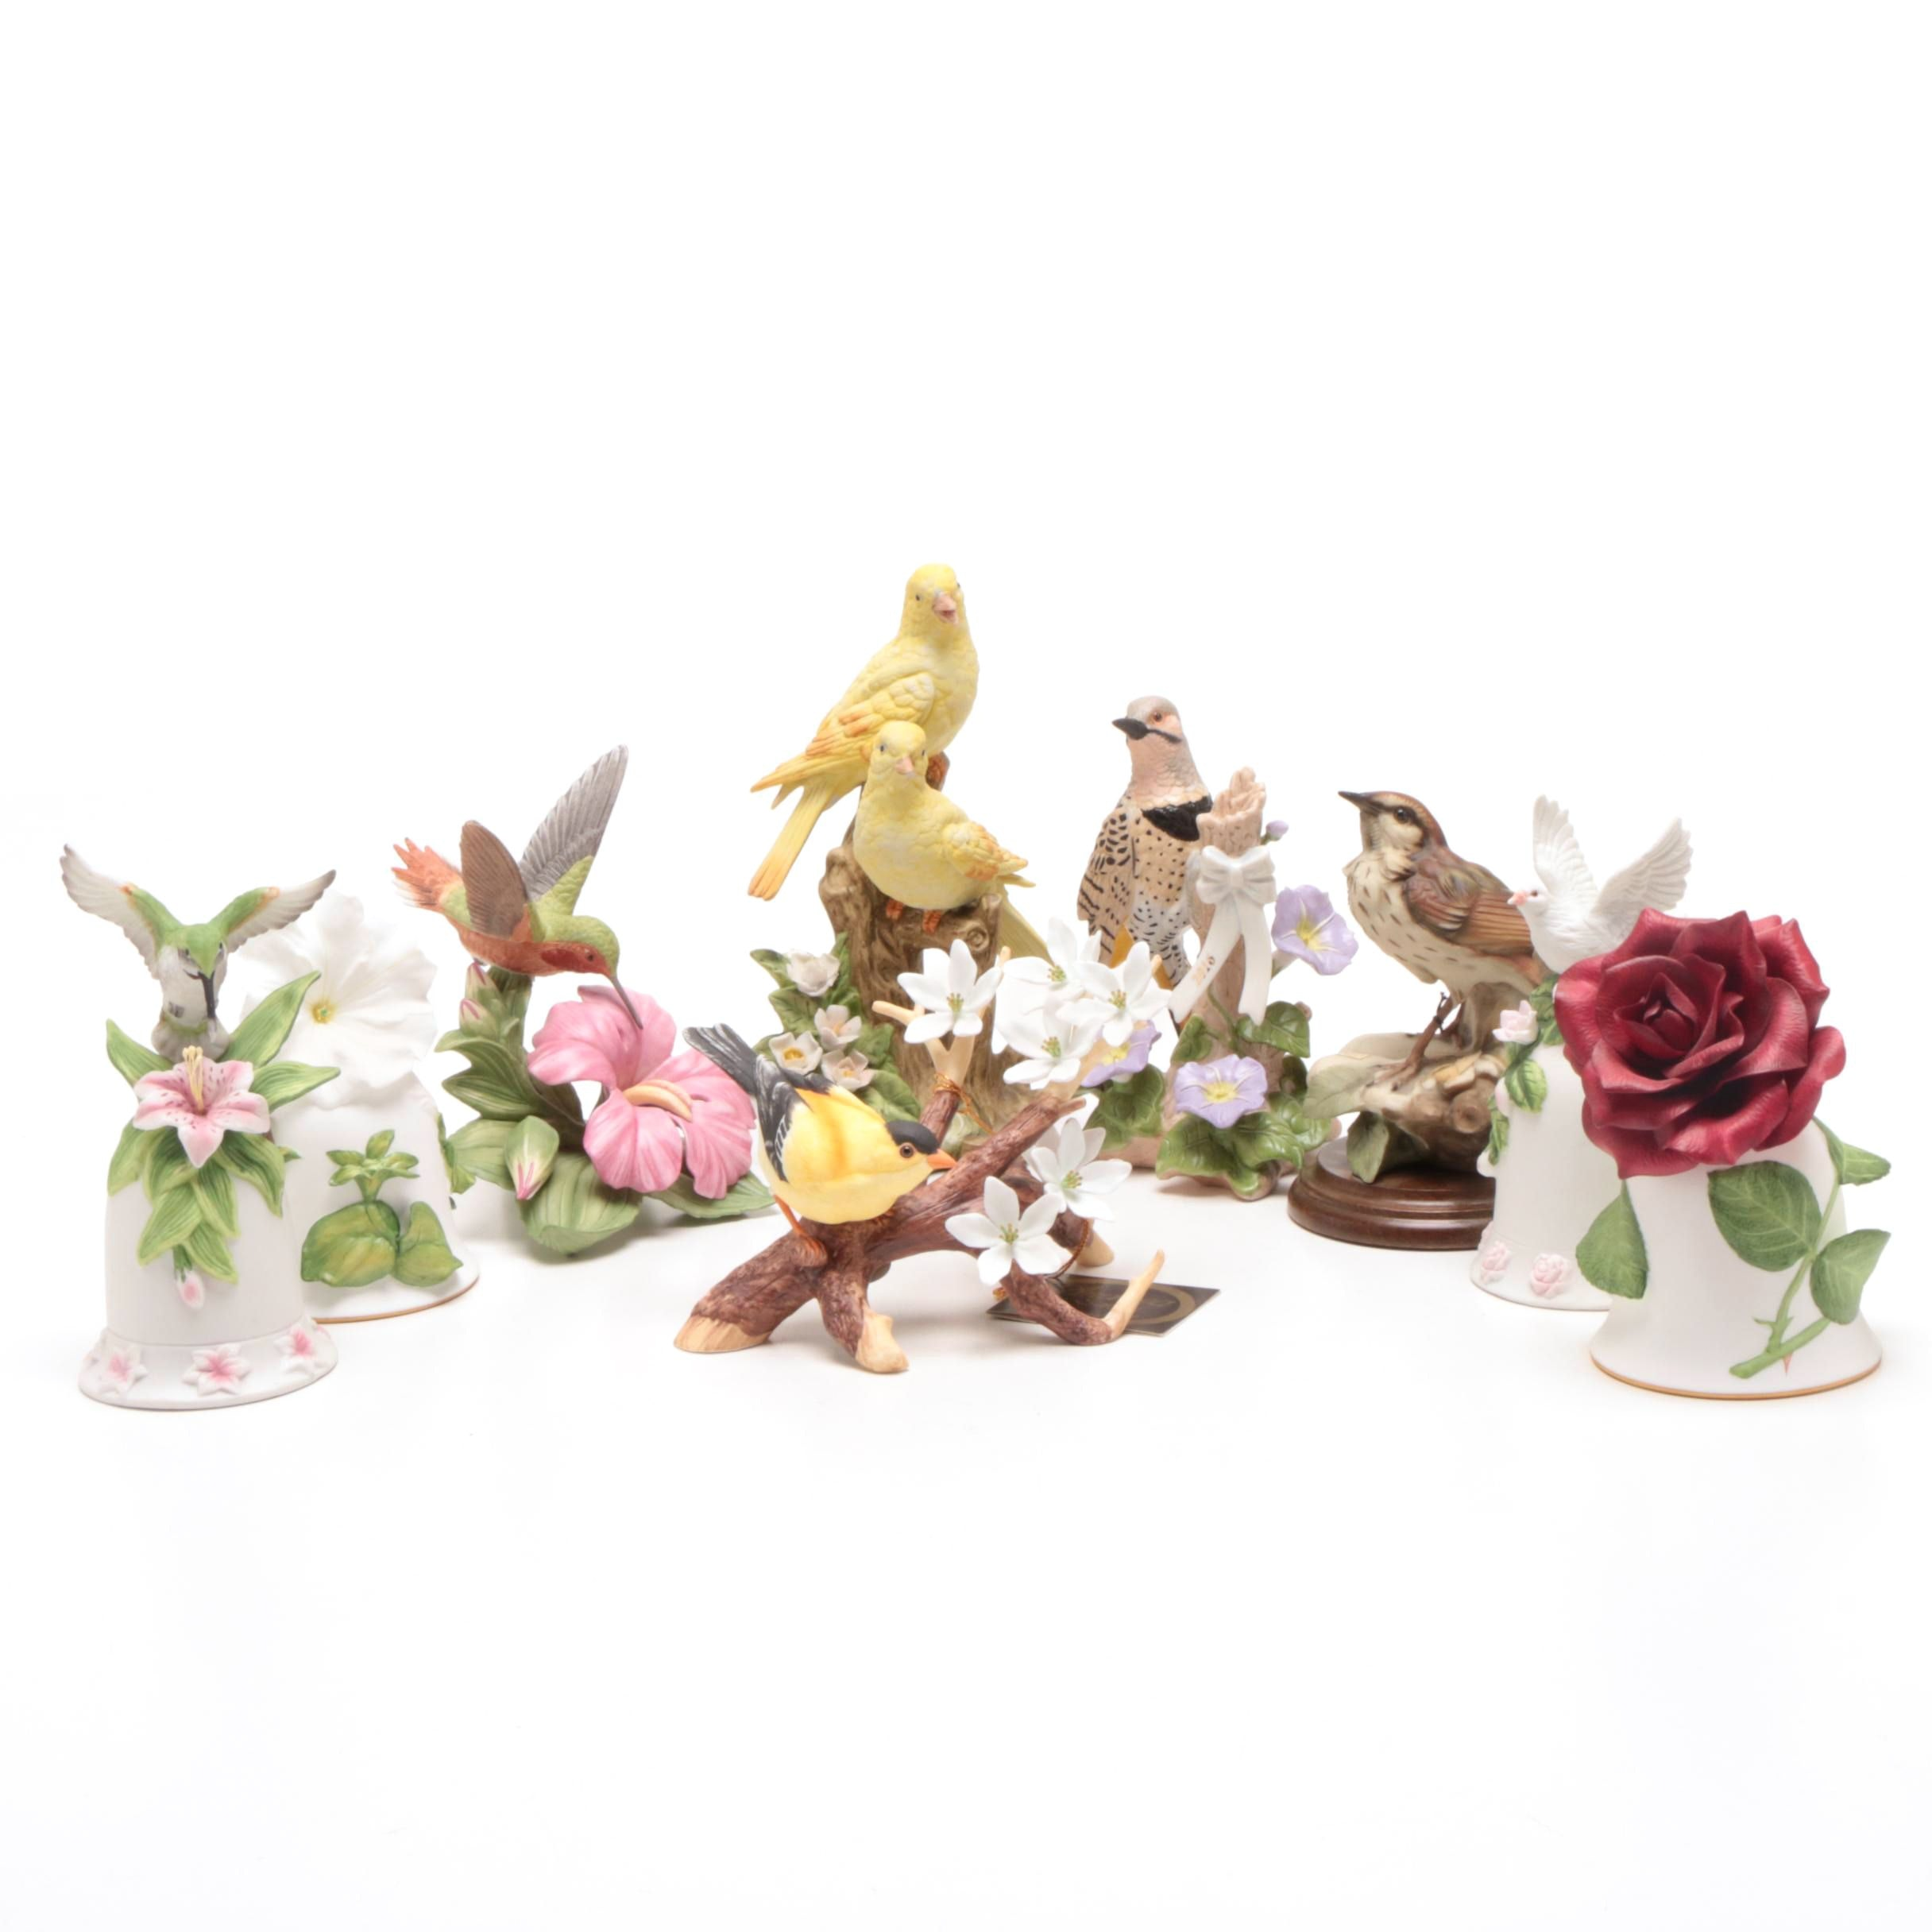 Grouping of Porcelain Figurines Including Lenox